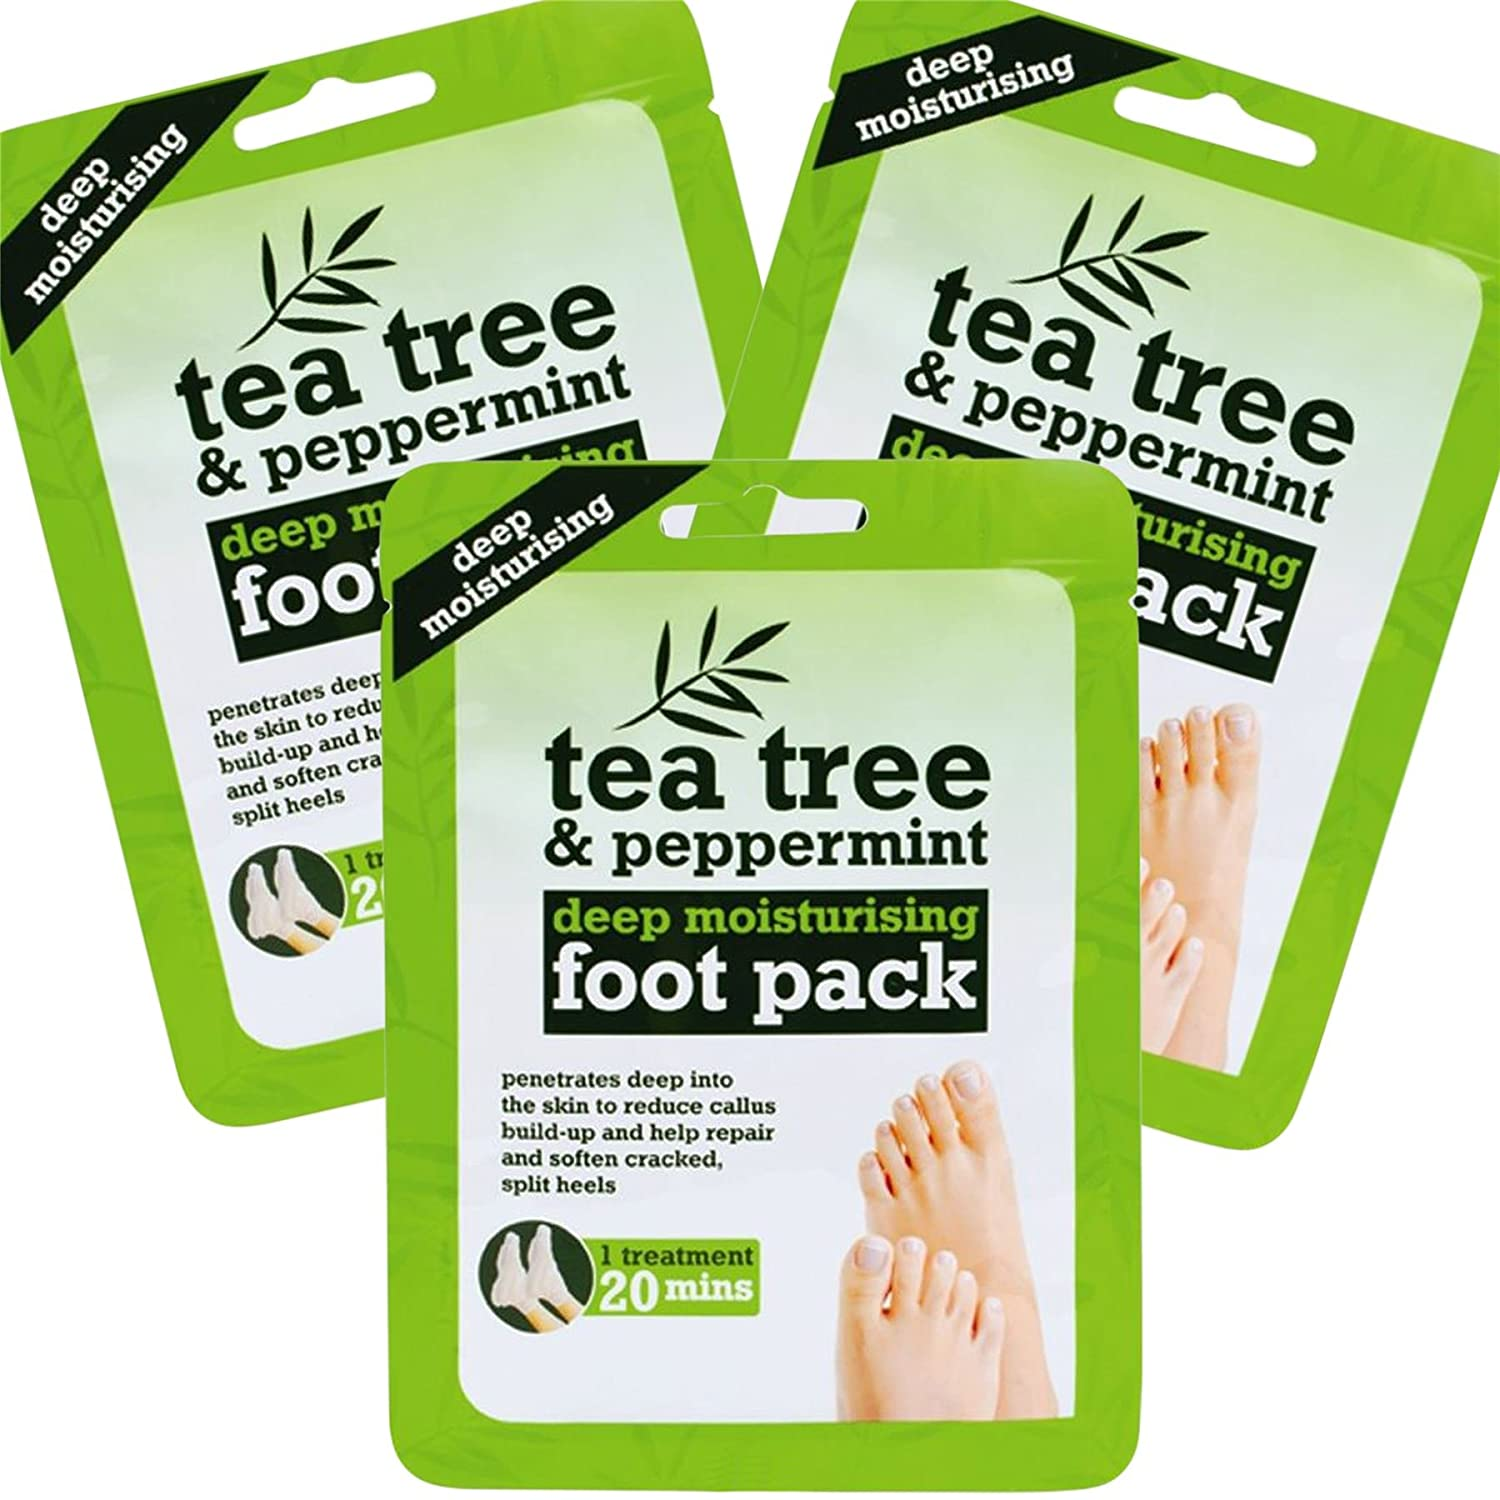 3x Tea Tree Peppermint & Shea Butter Foot Treatment Packs White Hinge